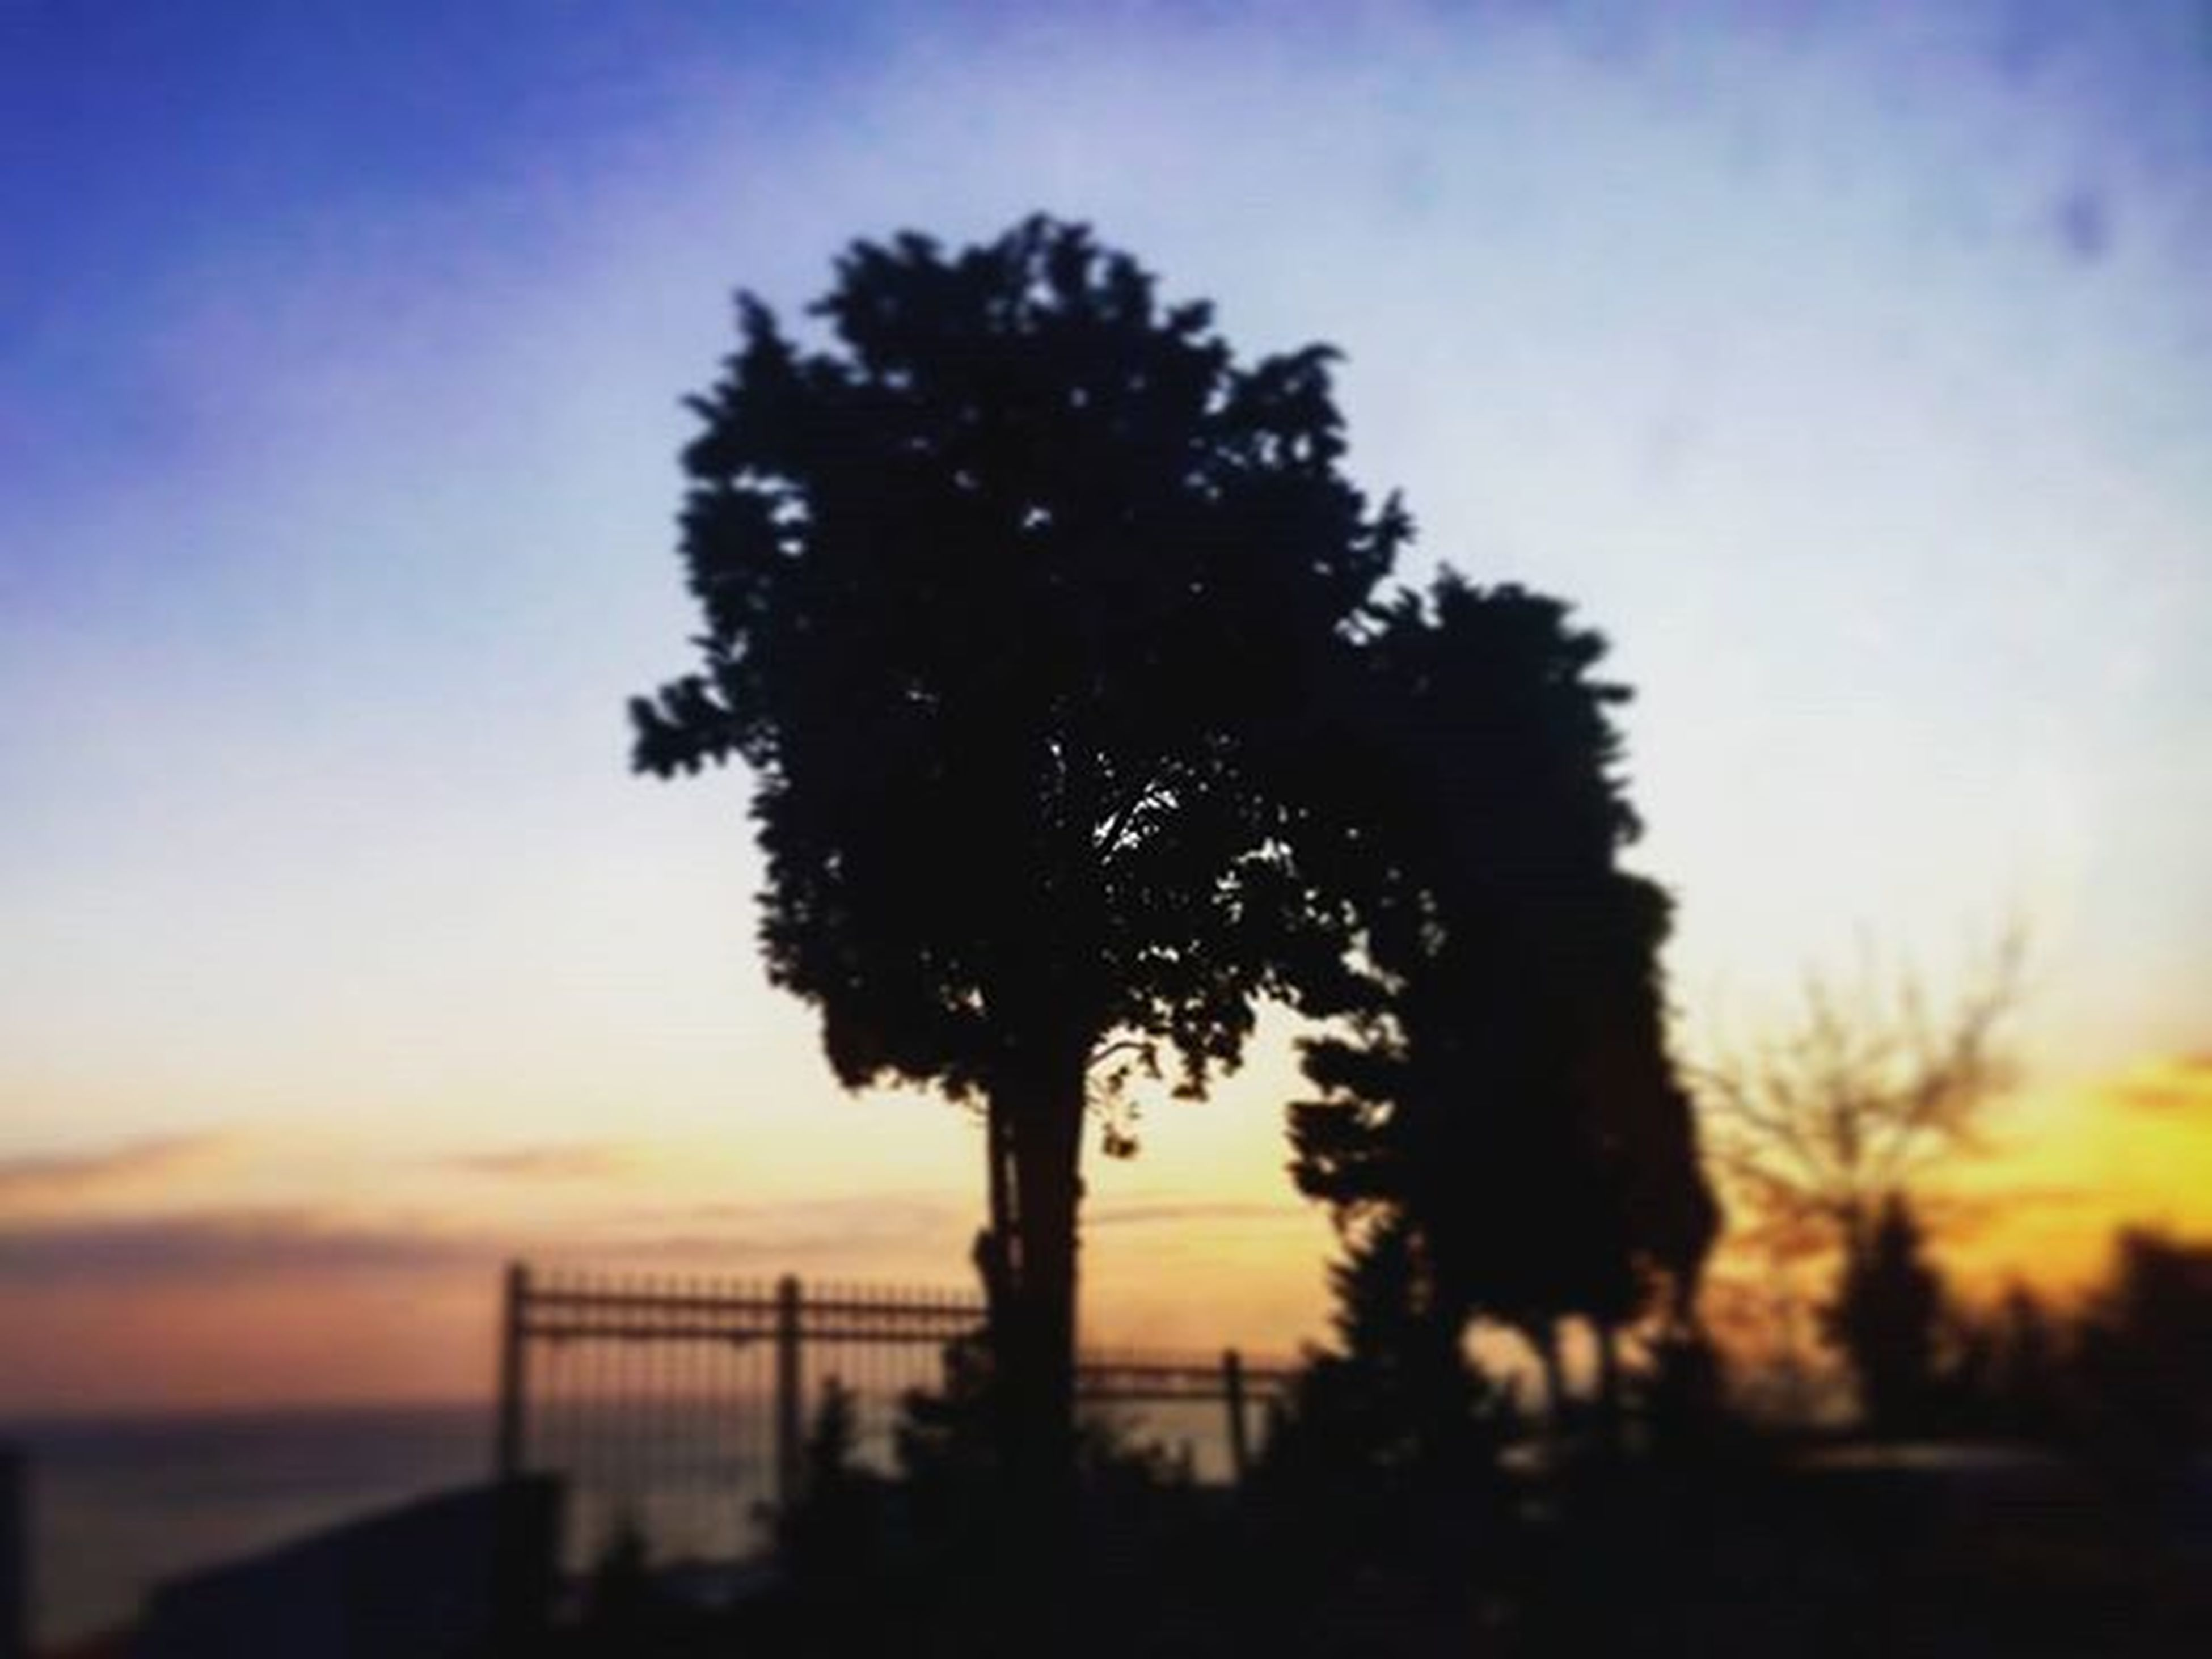 sunset, silhouette, tree, sky, tranquility, beauty in nature, nature, tranquil scene, scenics, growth, palm tree, low angle view, cloud - sky, tree trunk, dusk, outdoors, no people, idyllic, cloud, orange color